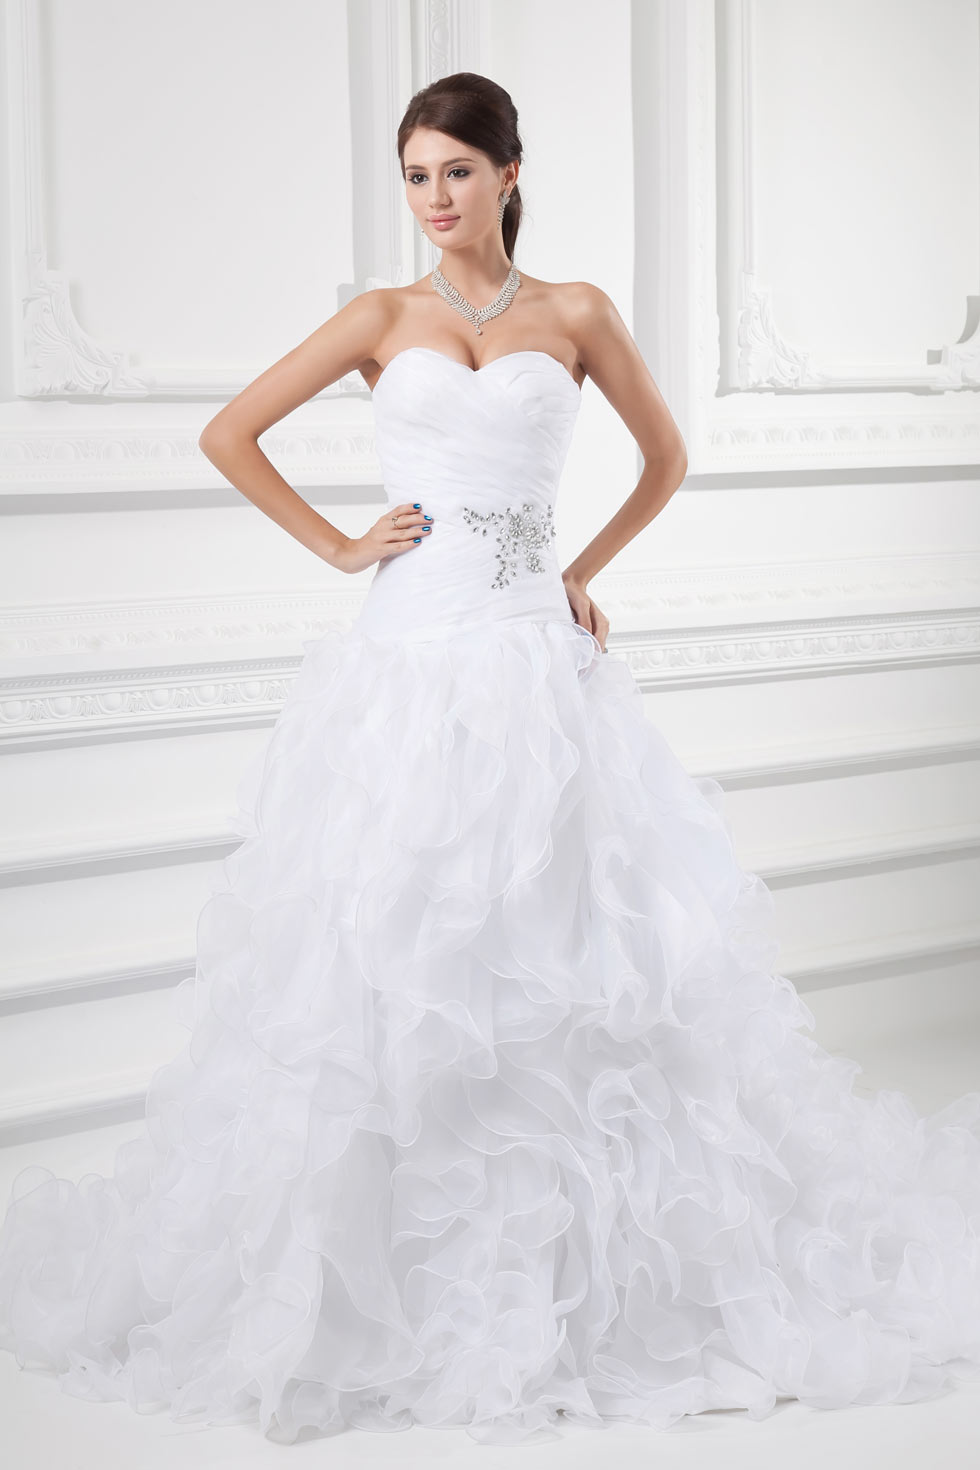 Exclaimhere: Robe De Mariee Avec Froufrou